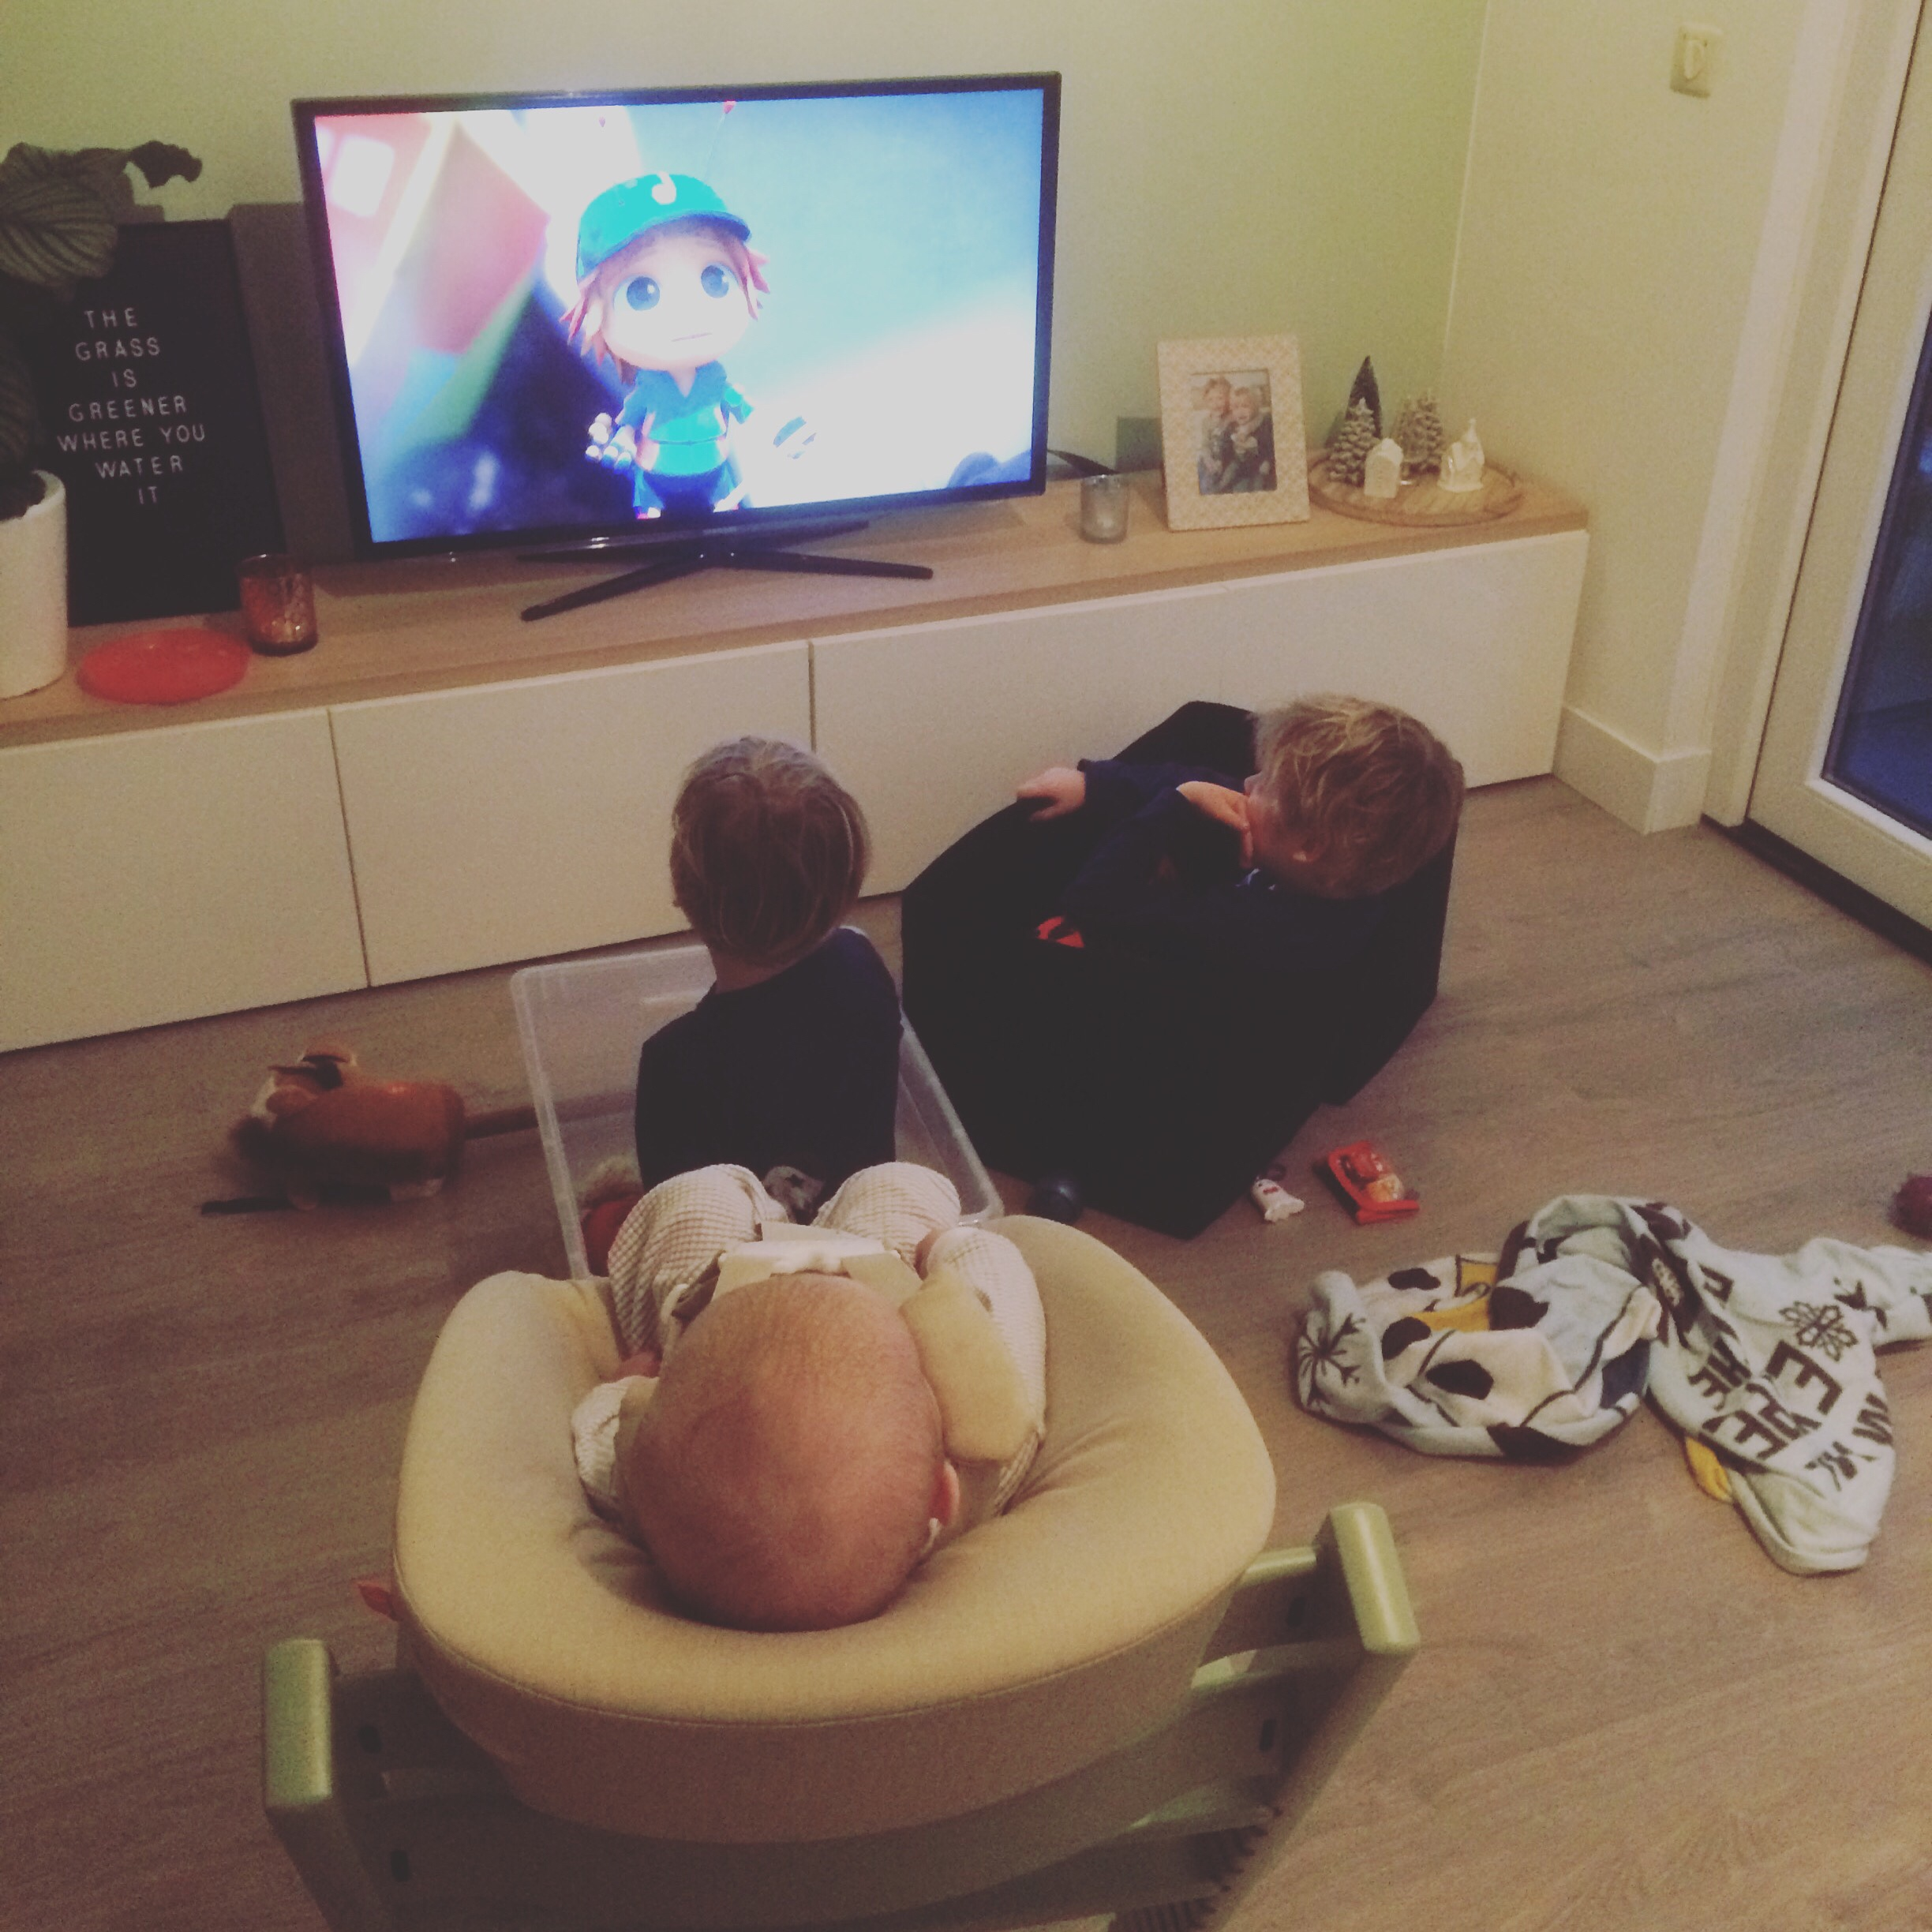 mama van drie mama mamablogger blogger kids kinderen baby laviedemama.nl